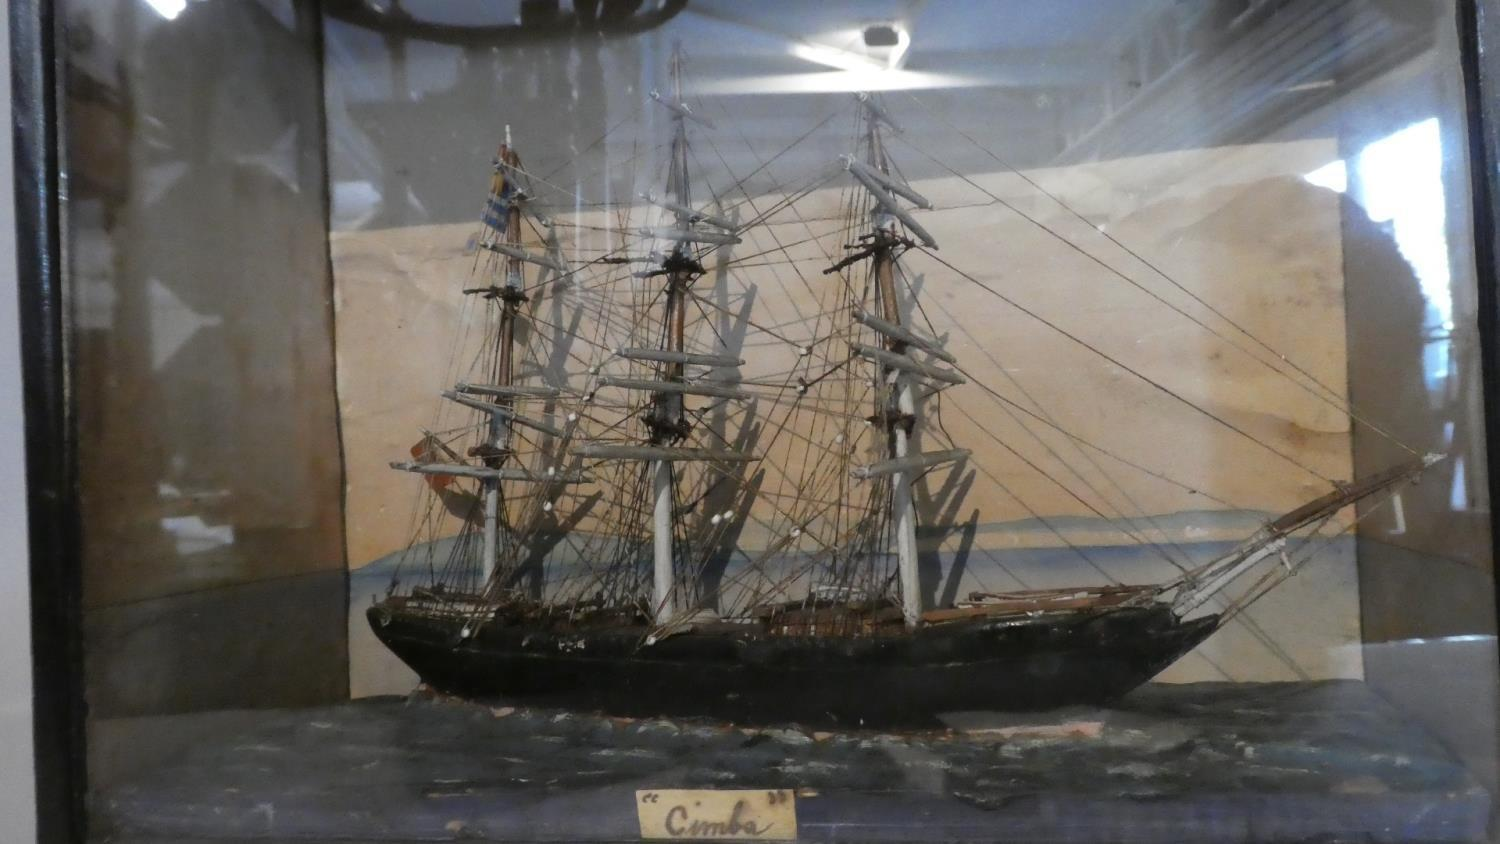 Lot 22 - A 19th Century Folk Art Ship Diorama in a Glazed Painted Wooden Case, Entitled 'Cimba', 14cm x